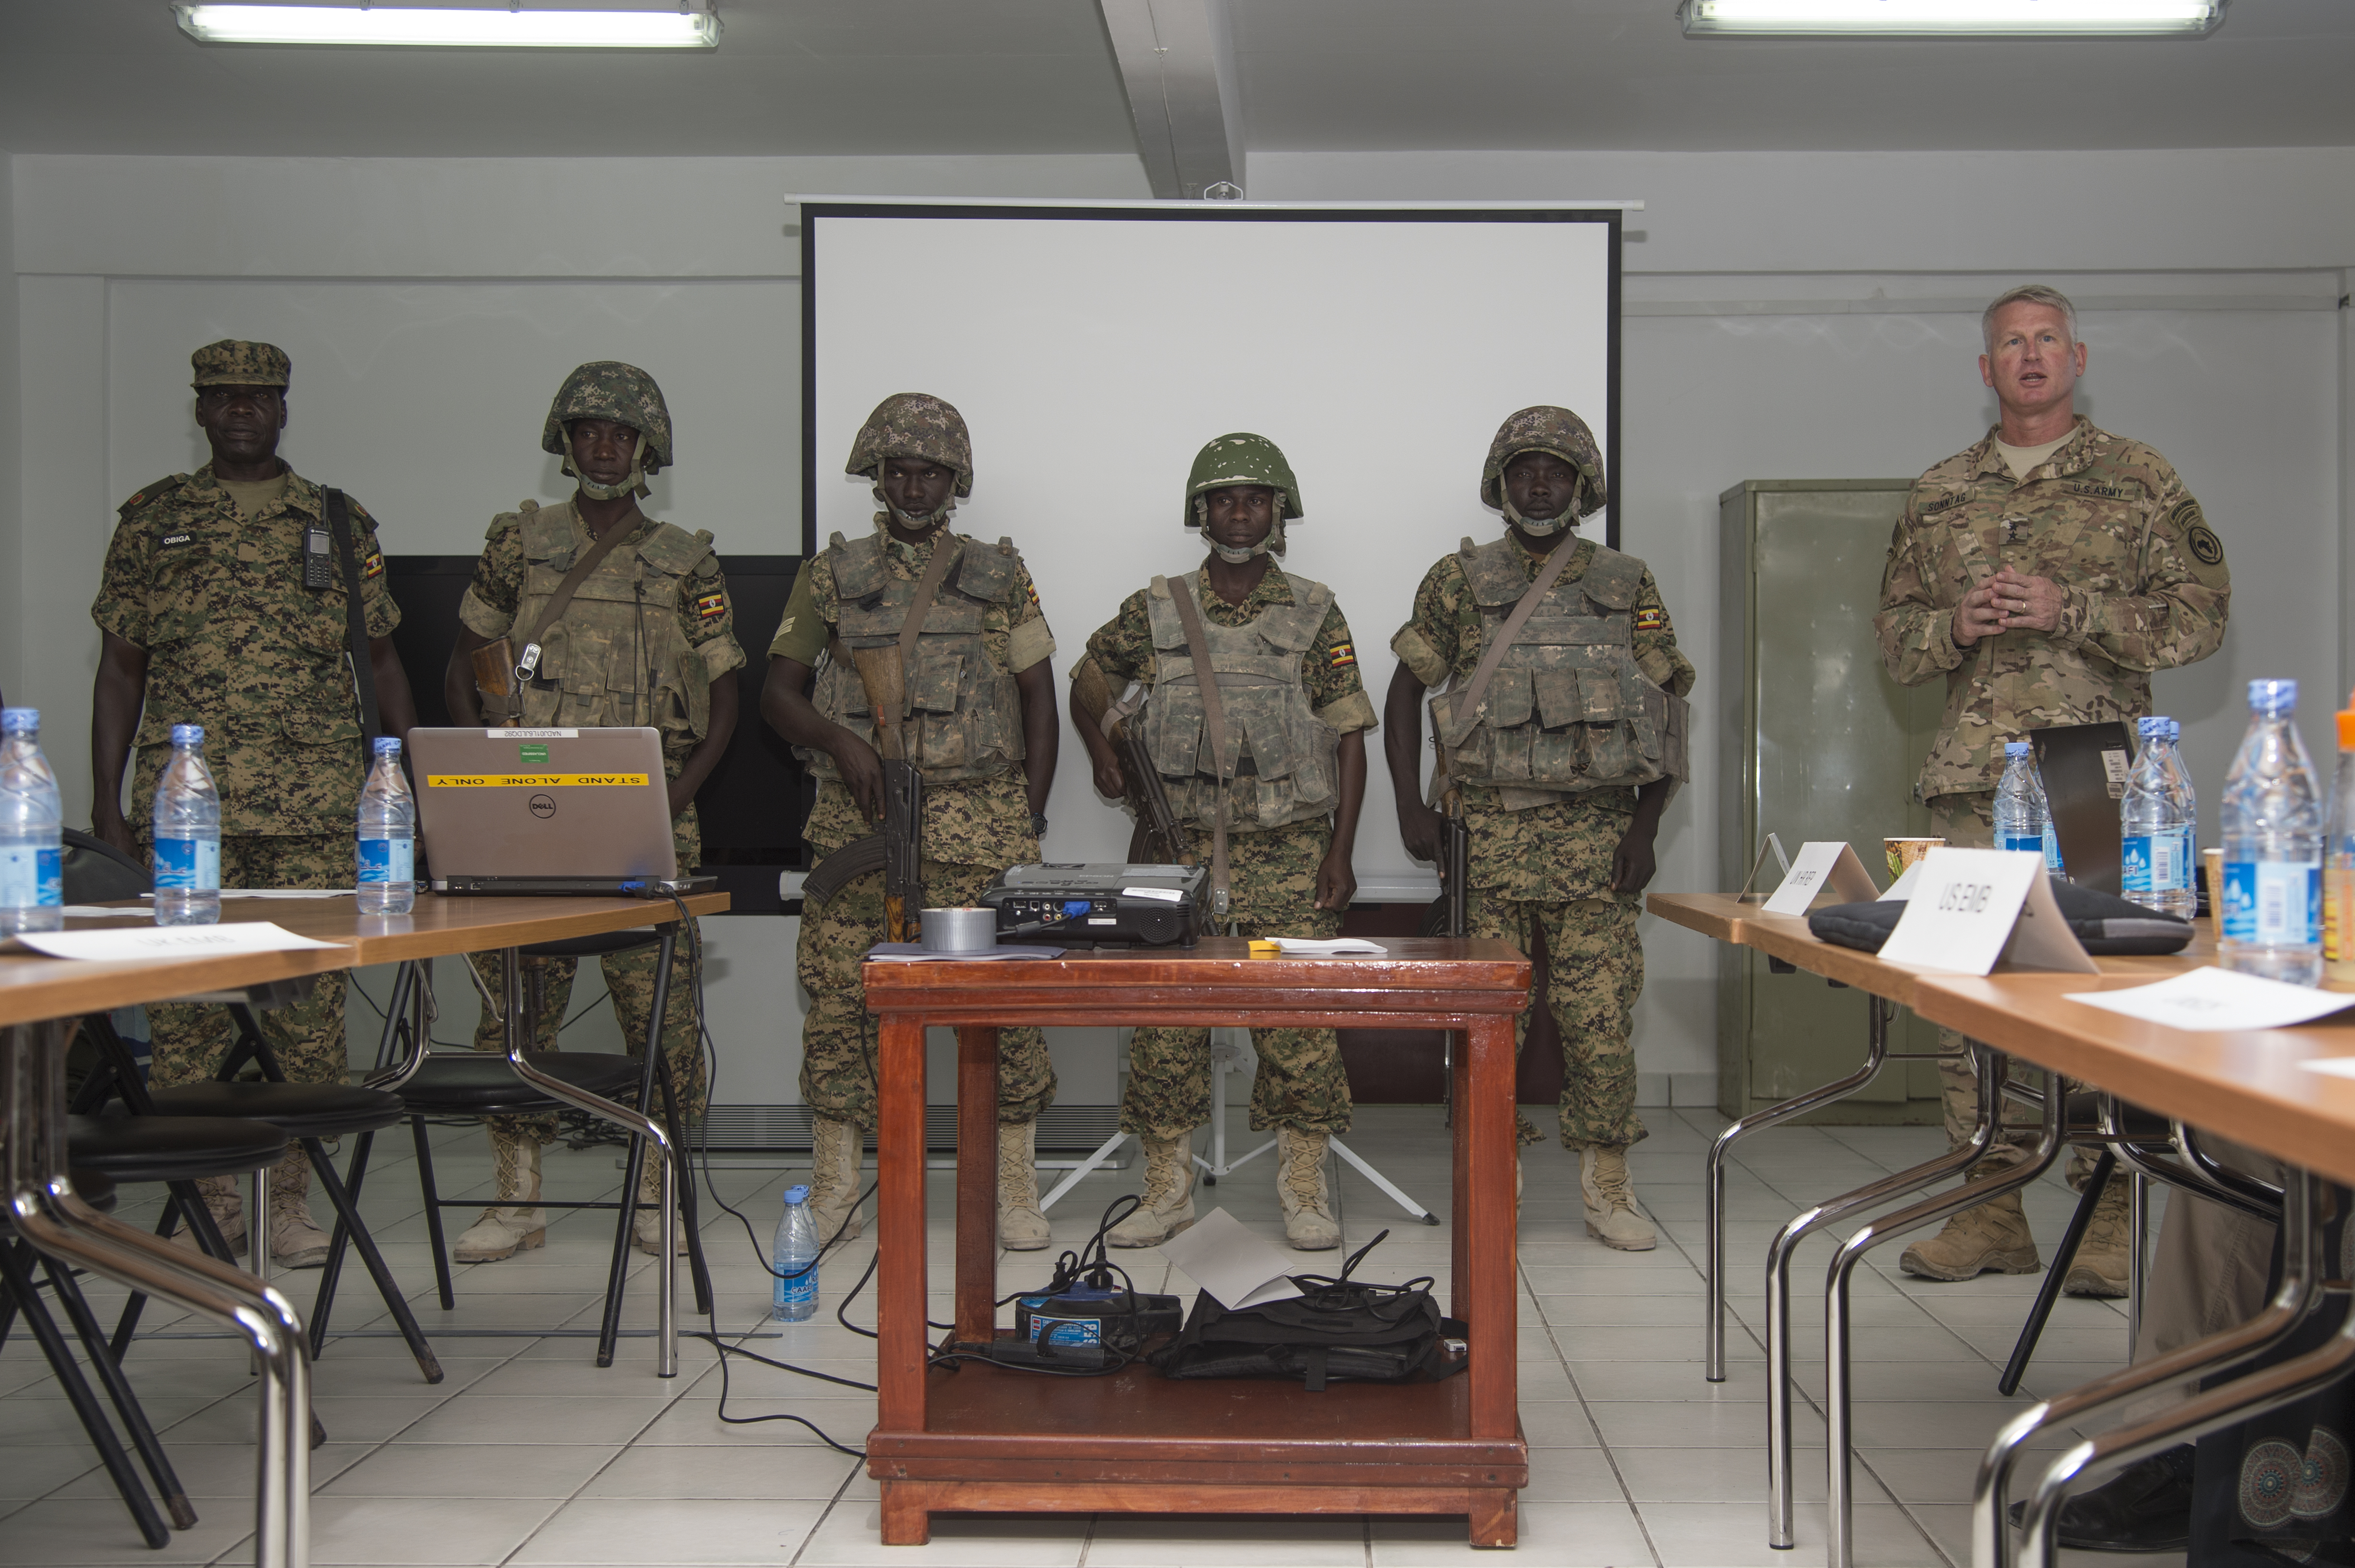 Maj. Gen. Kurt Sonntag, commanding general of the Combined Joint Task Force-Horn of Africa, right, recognizes members of the Ugandan military responsible for defeating a vehicle borne IED attack while serving with the African Union Mission in Somalia during the SNA Symposium in downtown Mogadishu, Jan. 11, 2017. AMISOM is an active, regional peacekeeping mission operated by the African Union with the approval of the United Nations in Somalia. (Photo by  Master Sgt. Paul Gorman/Released)